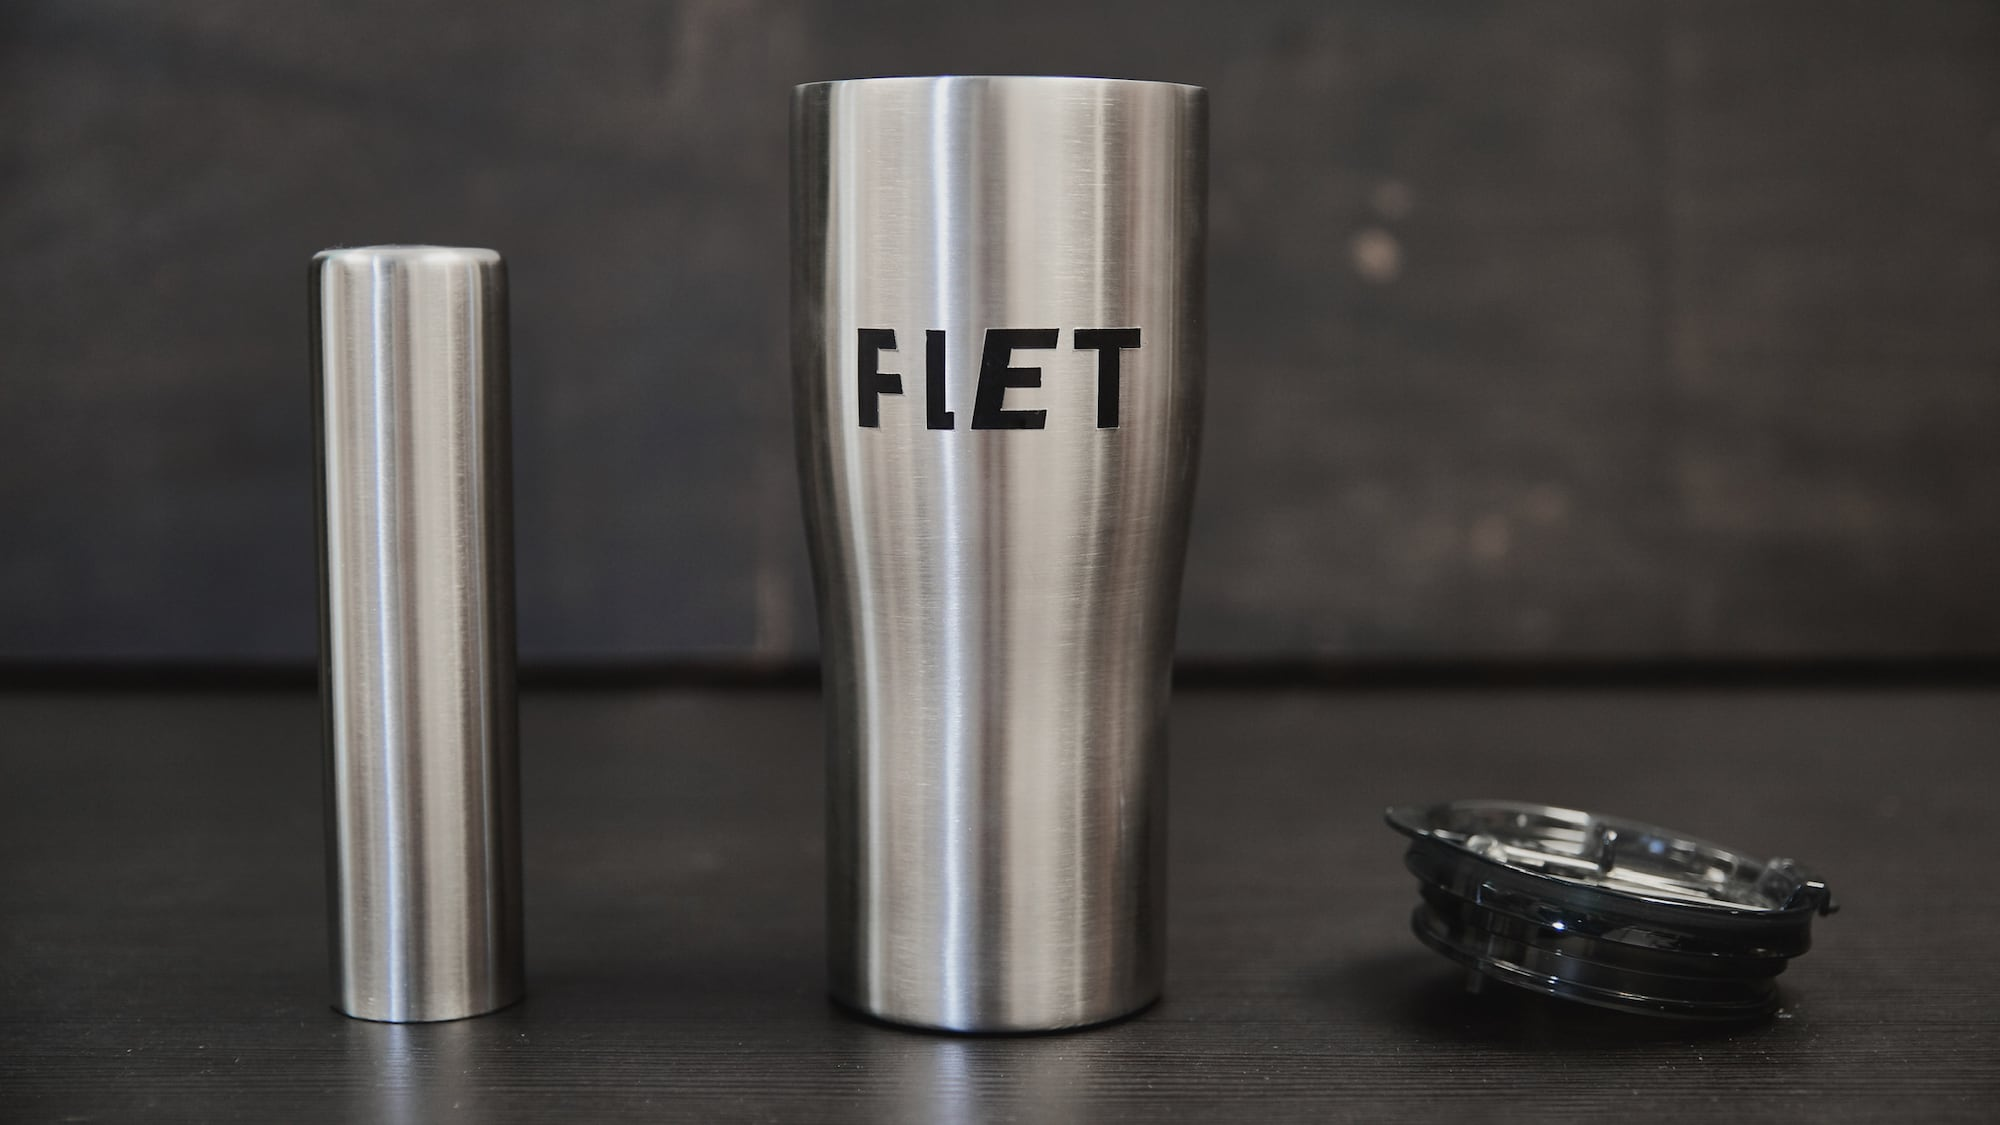 FLET Iced Drink Tumbler has a frozen stick inside to keep your beverage super cold